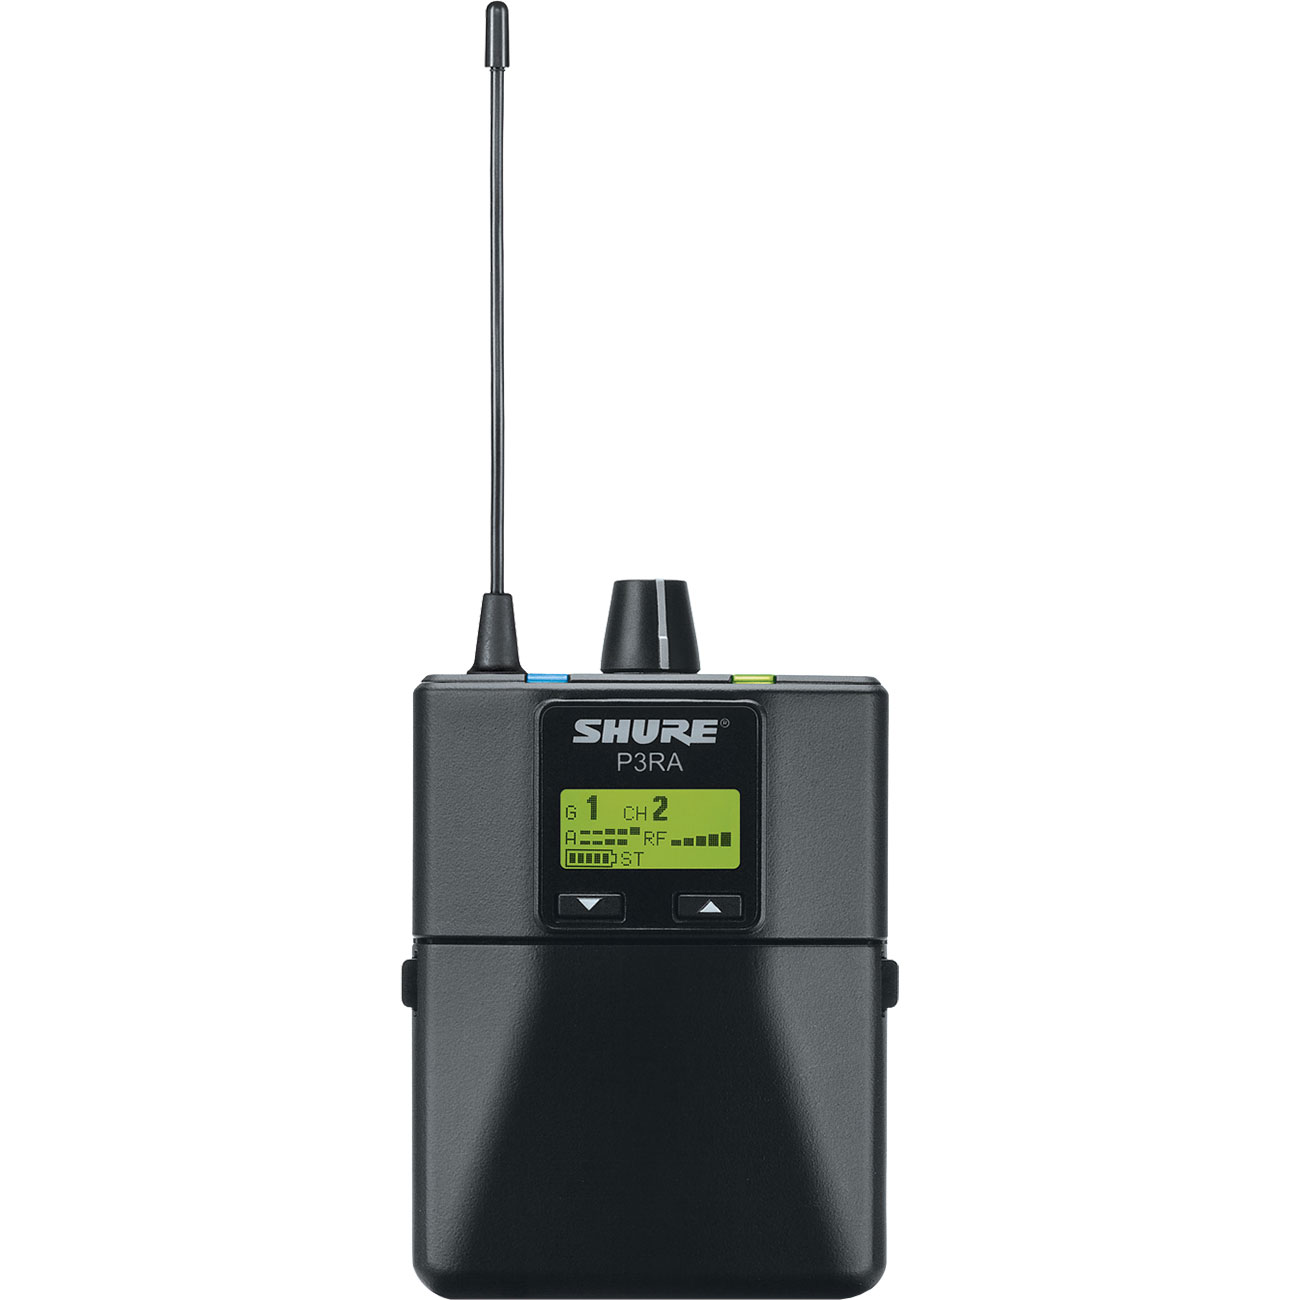 Shure PSM300 Professional Wireless In-Ear Monitor Rechargeable Bodypack Receiver